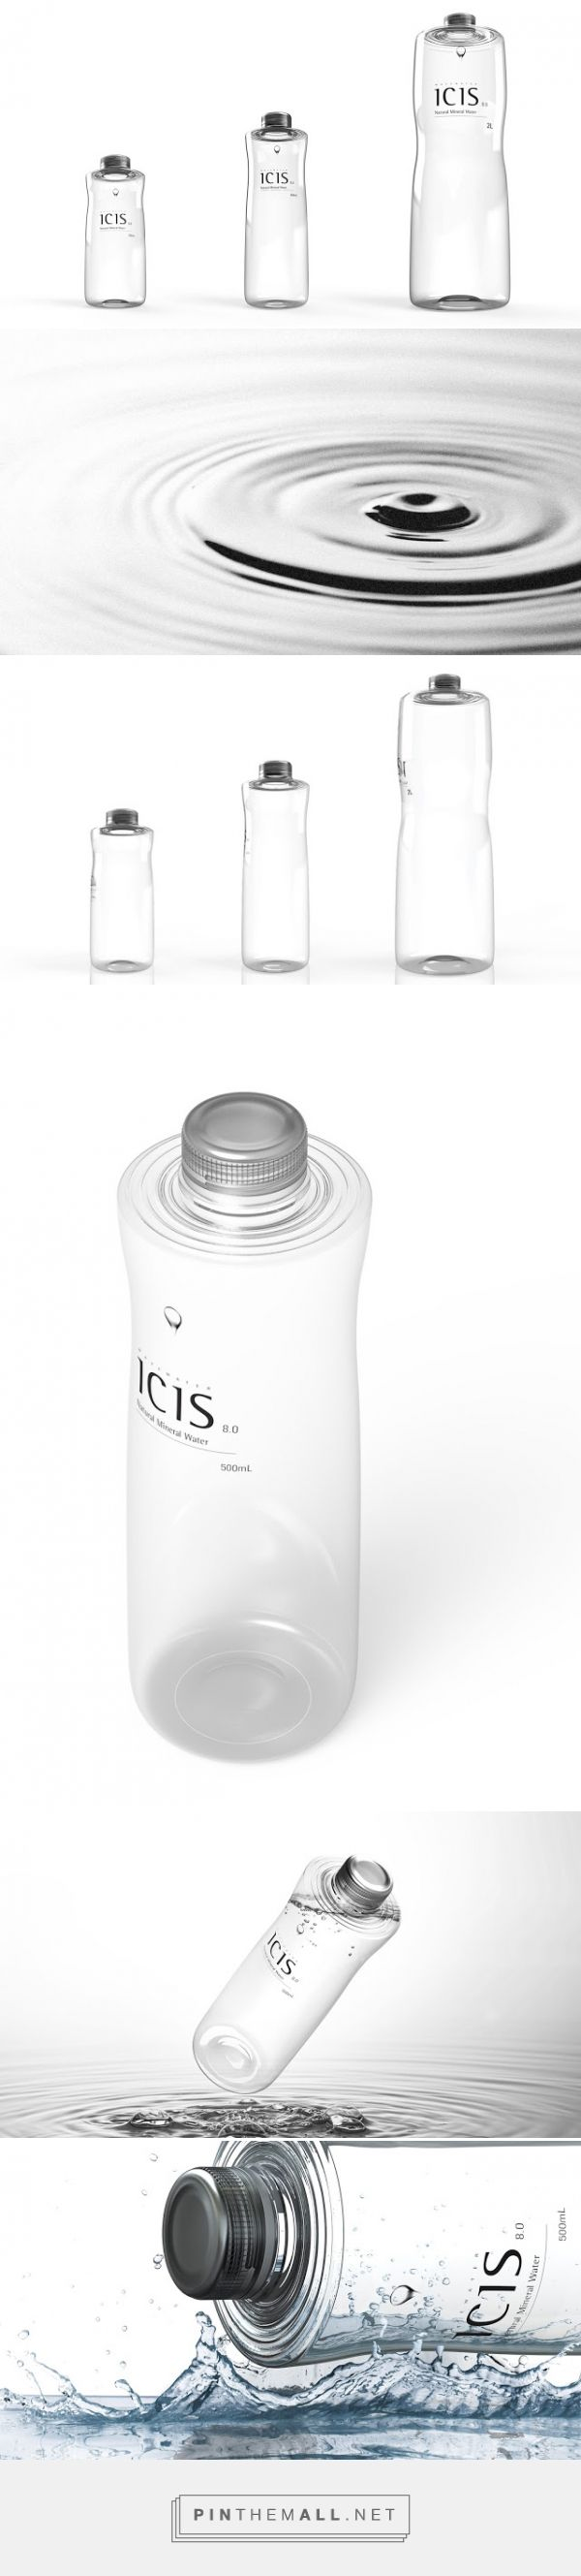 ICIS ‪‎Ripple‬ ‪‎Water‬ ‪‎Concept‬ ‪‎Packaging‬ designed by Choi Seungho - http://www.packagingoftheworld.com/2015/11/icis-wave-water-concept.html